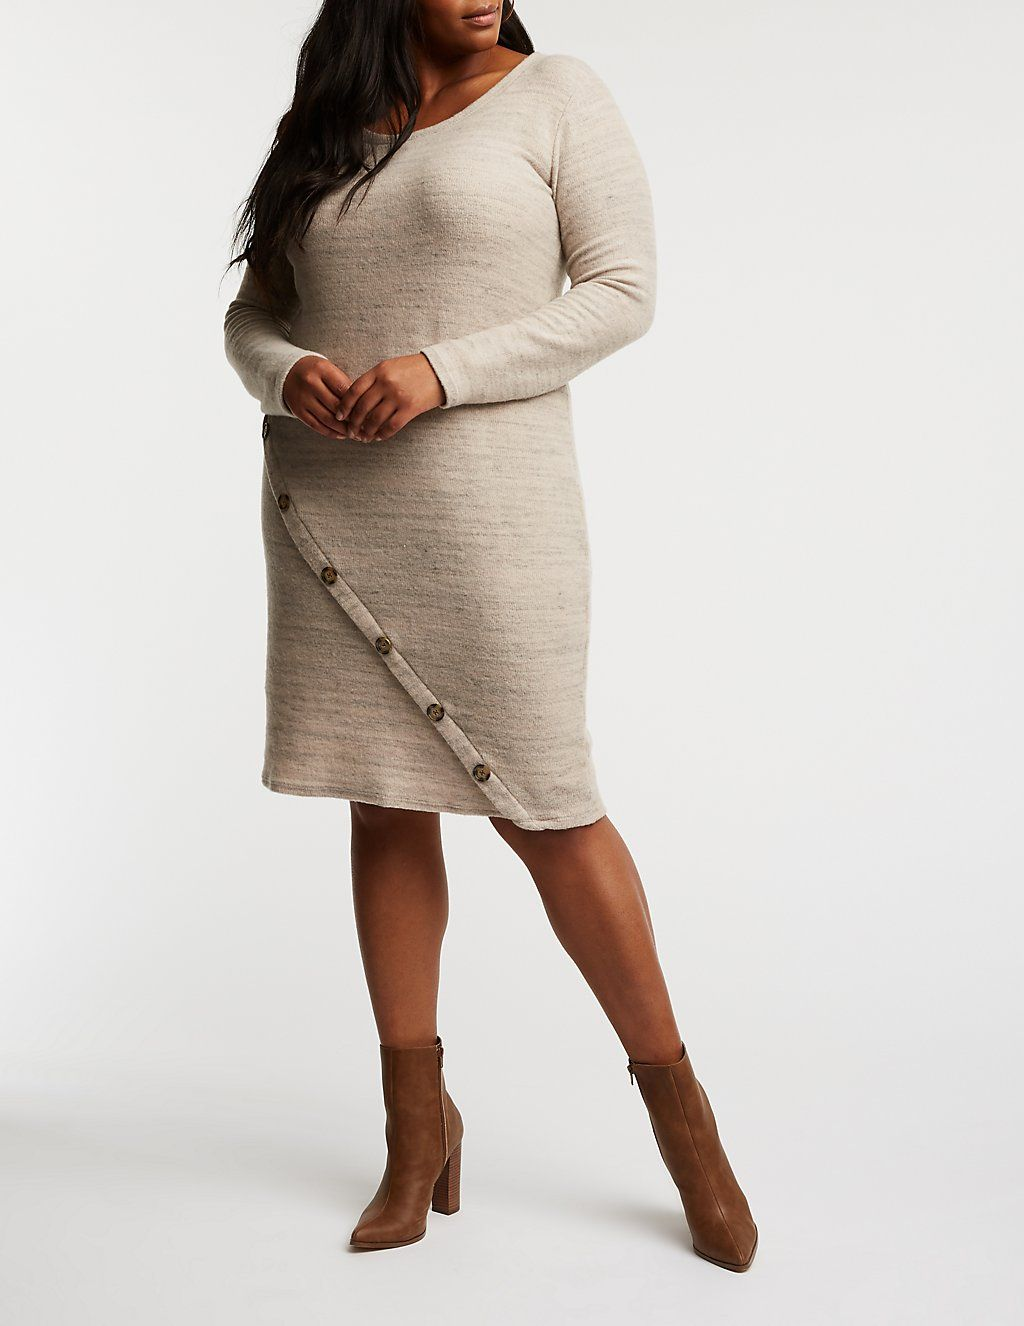 Plus Size Asymmetrical Button Up Sweater Dress  b65ca3512